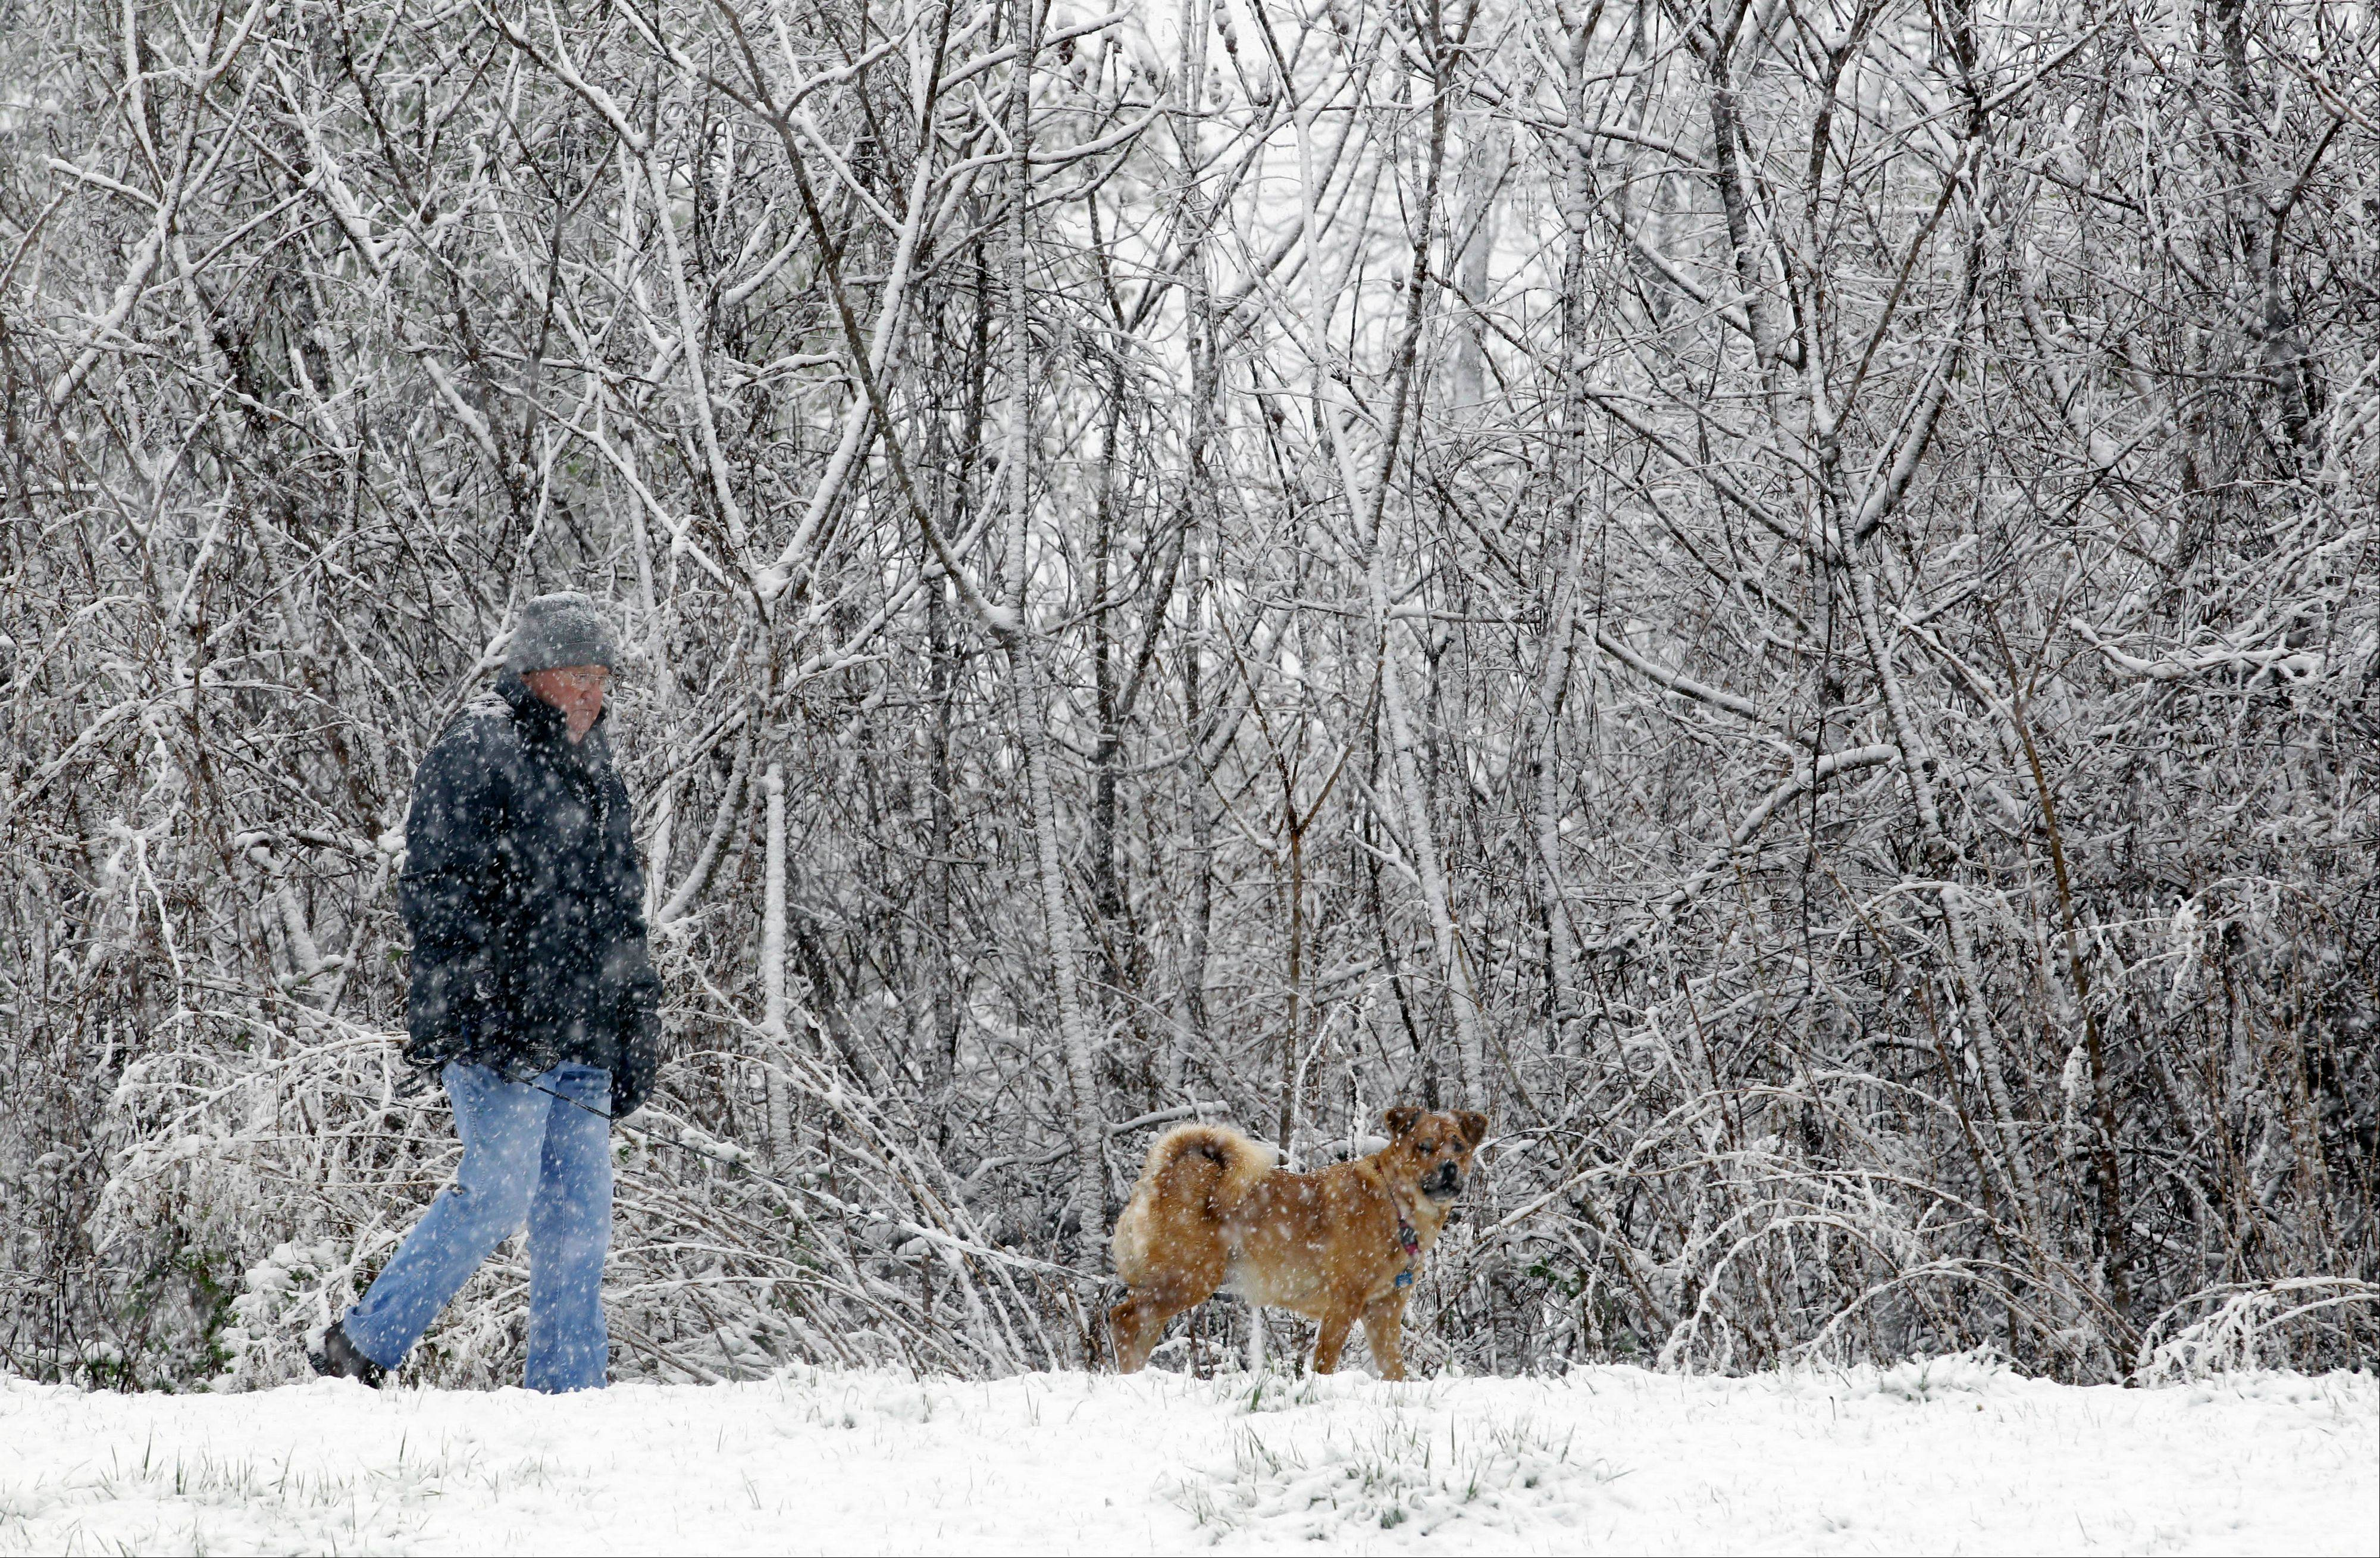 Don Buckley takes his dog Gracie for a walk during a spring snowstorm in Akron, N.Y., Monday, April 23, 2012. A spring nor'easter dumped up to six inches of snow east of Lake Ontario on Monday, and parts of western New York could see more than a foot of snow before the late-season storm moves on.